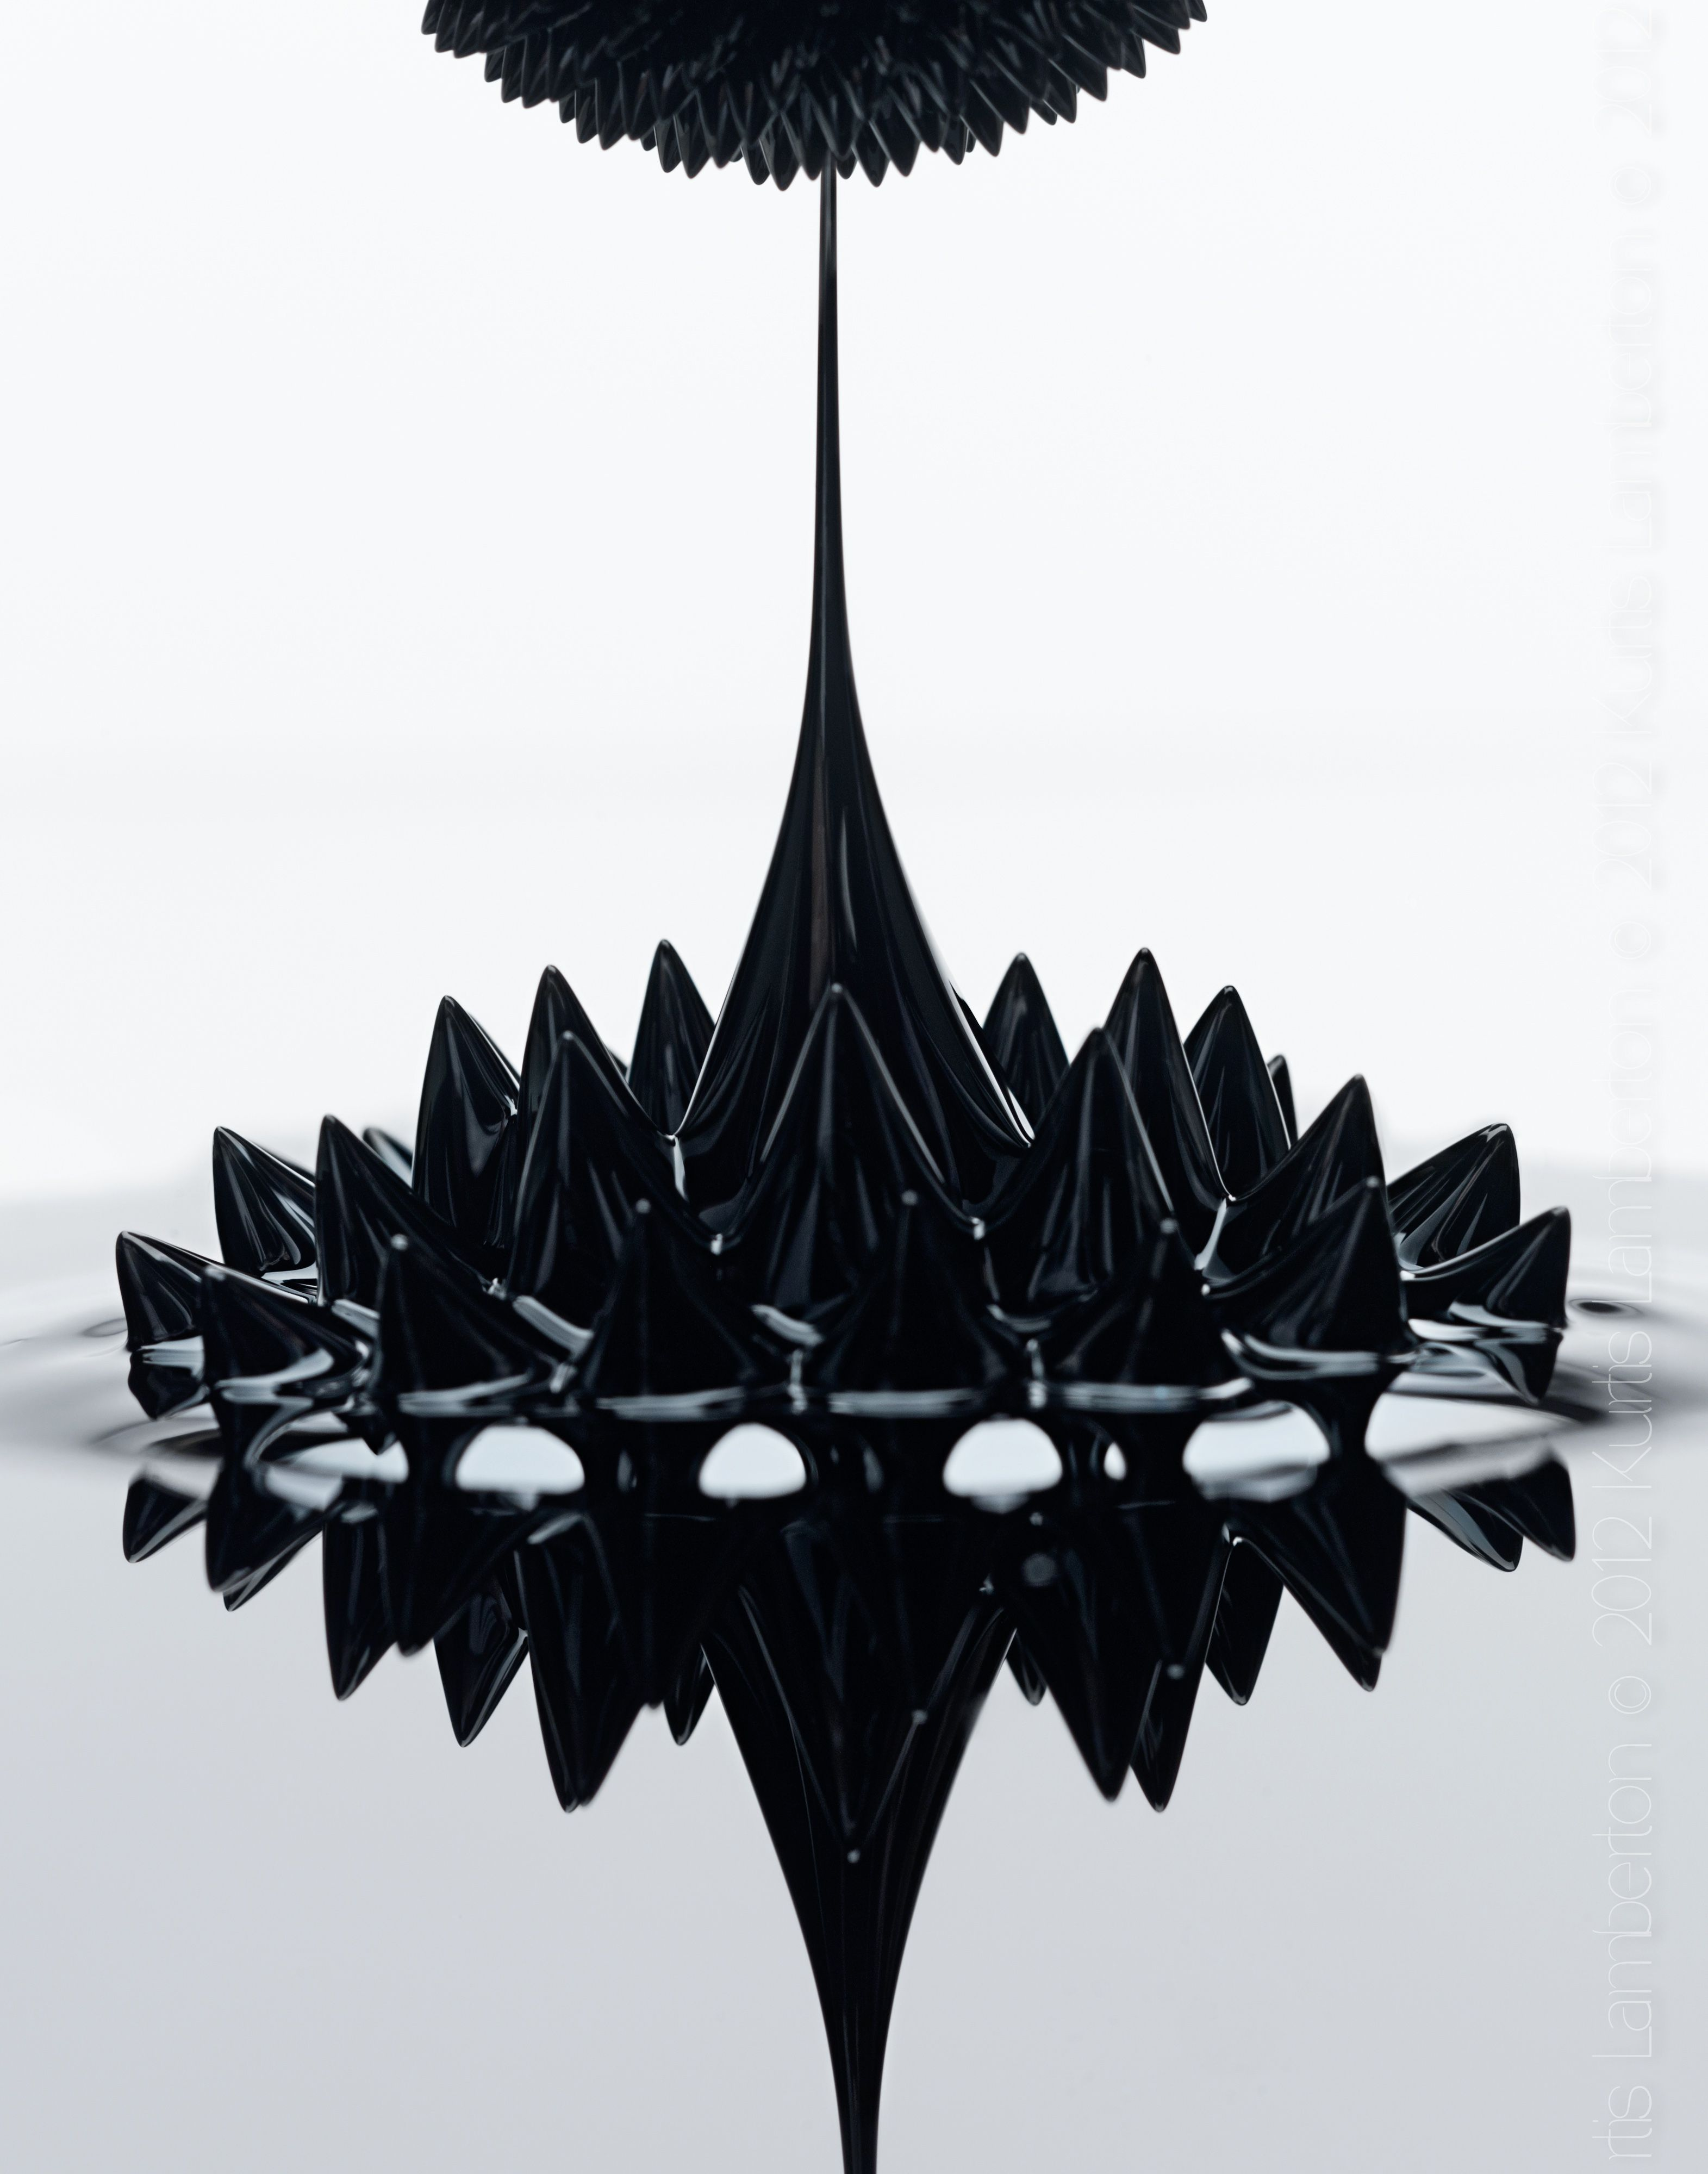 Ferrofluid: magnetic influence made visible.    Ferrofluids are liquids which magnetise strongly when exposed to magnetic feilds. Large ferromagnetic particles can be ripped out of the homogeneous colloidal mixture (the liquid), forming a separate clump of magnetic dust when exposed to strong magnetic fields.